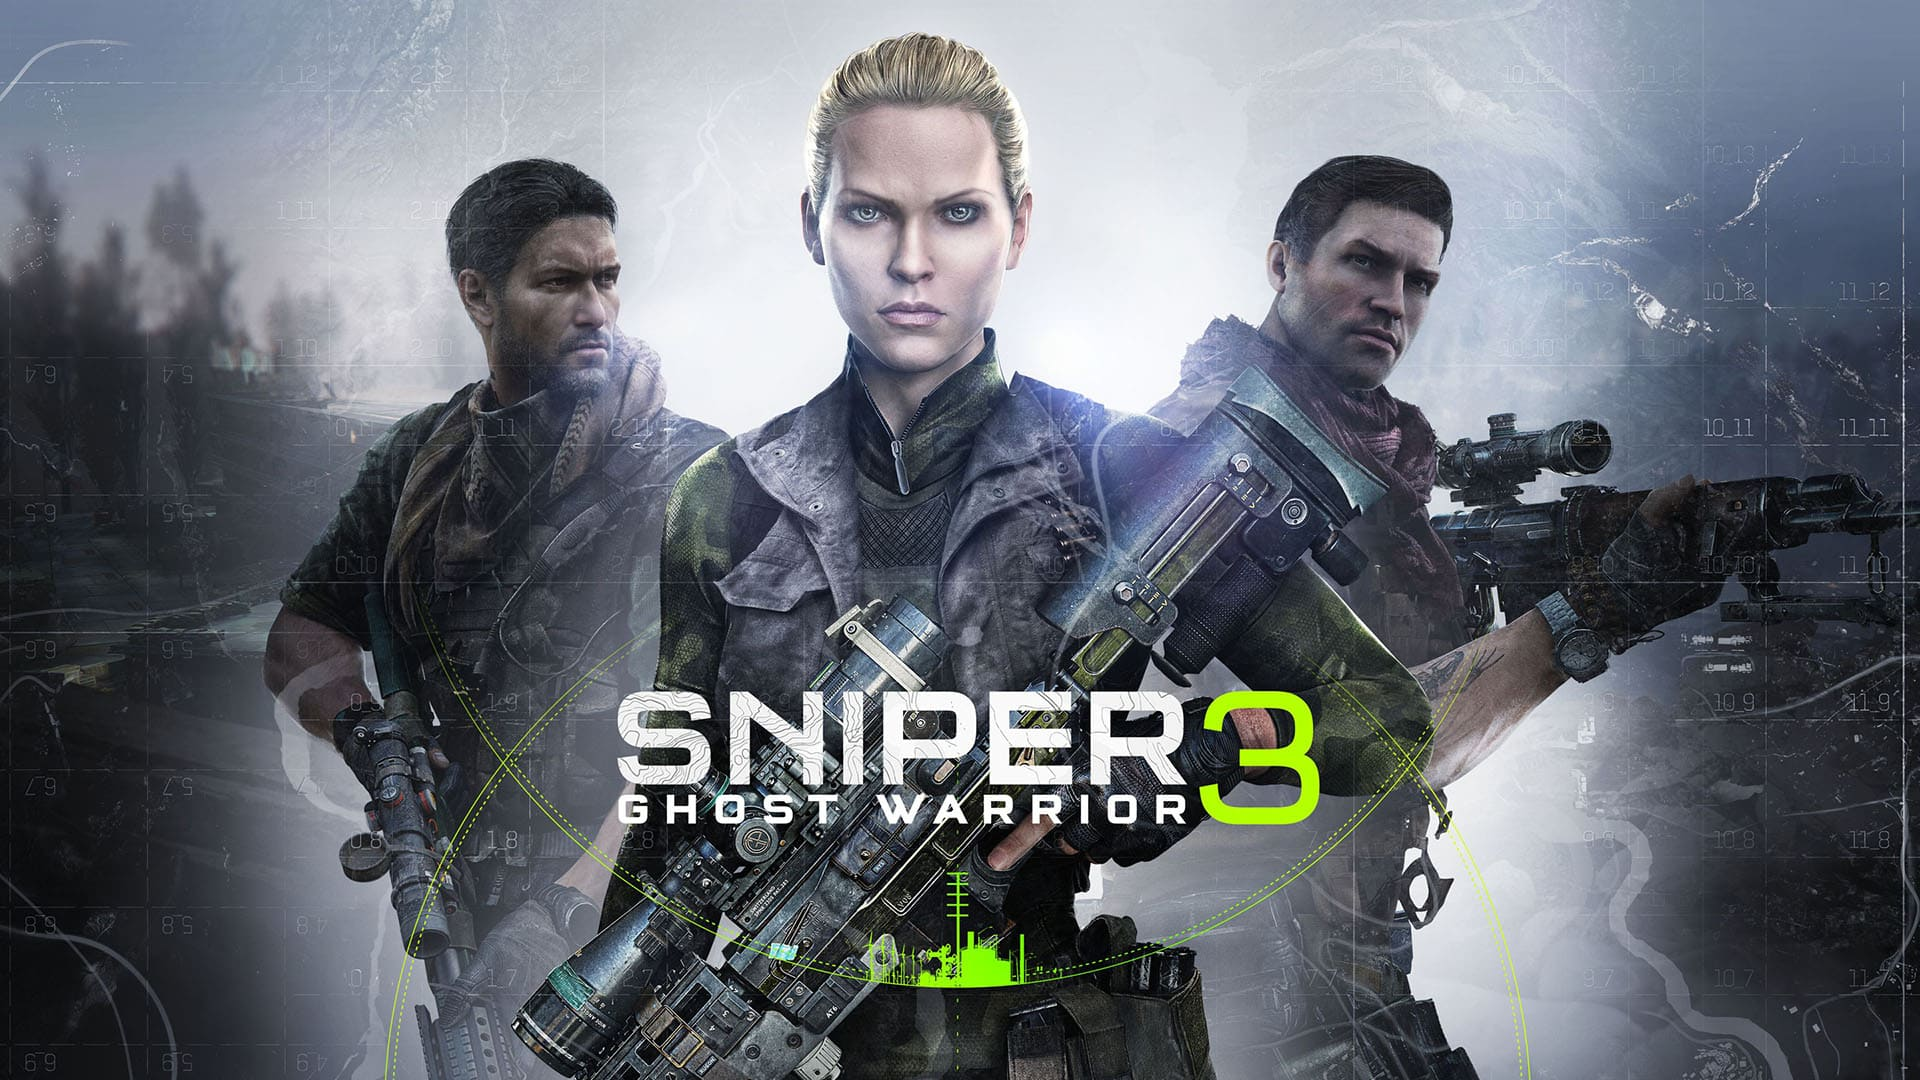 ... Sniper Ghost Warrior 3 Wallpaper - Girl Character ...